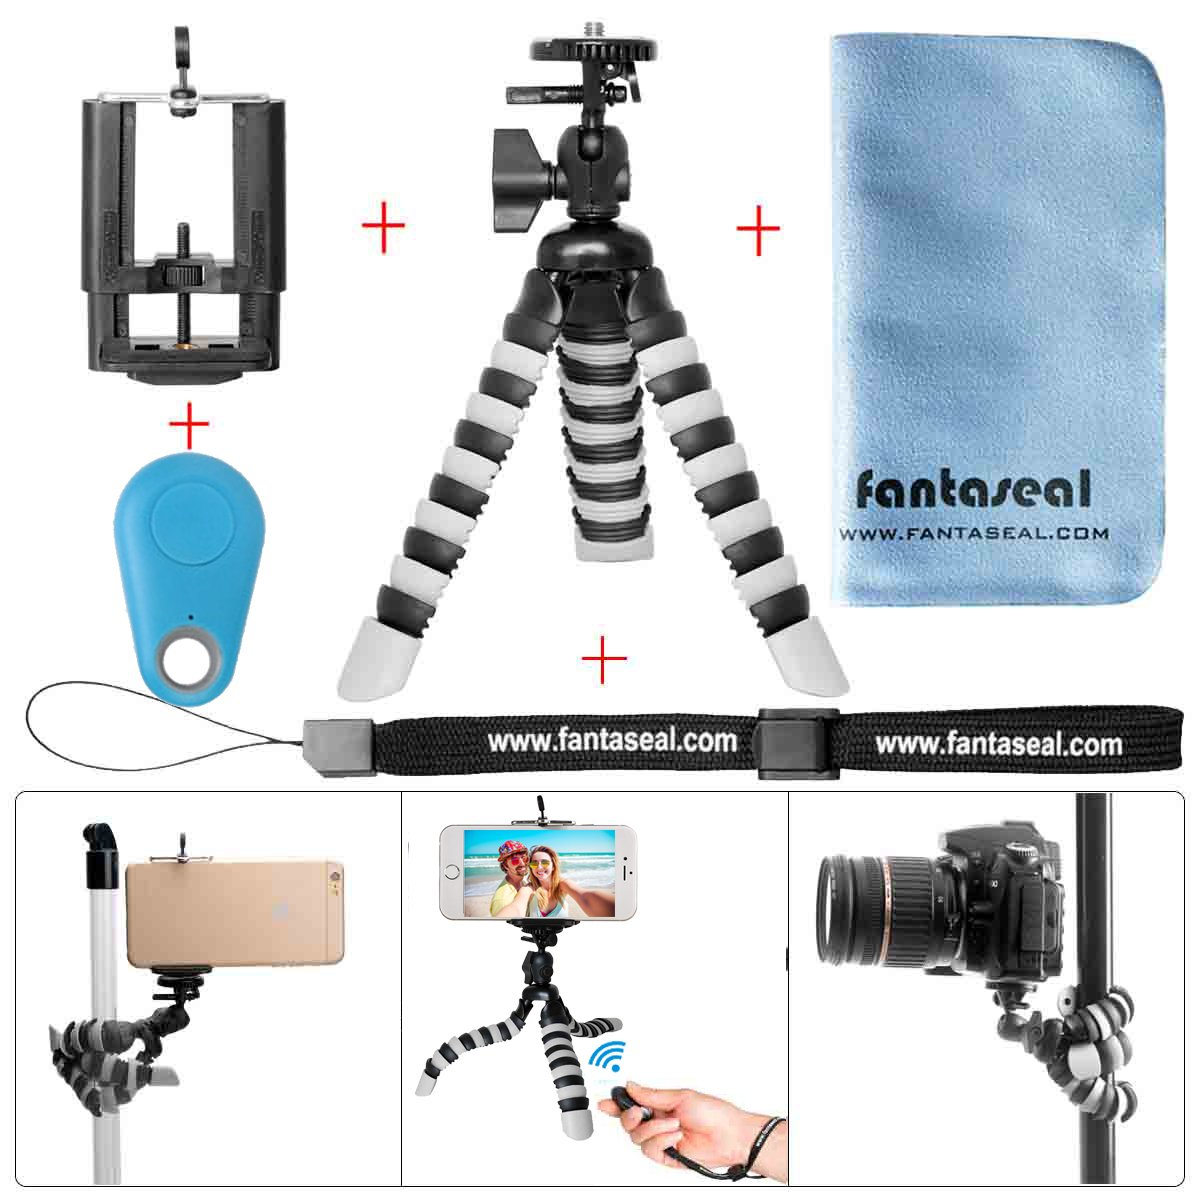 Fantaseal Smartphone Tripod w/Bluetooth RC Remote Control Cellphone Mount Universal Smartphone Tripod Holder Stand DSLR Camera Mini Octopus Tripod Flexible for iPhone Huawei -BL by fantaseal